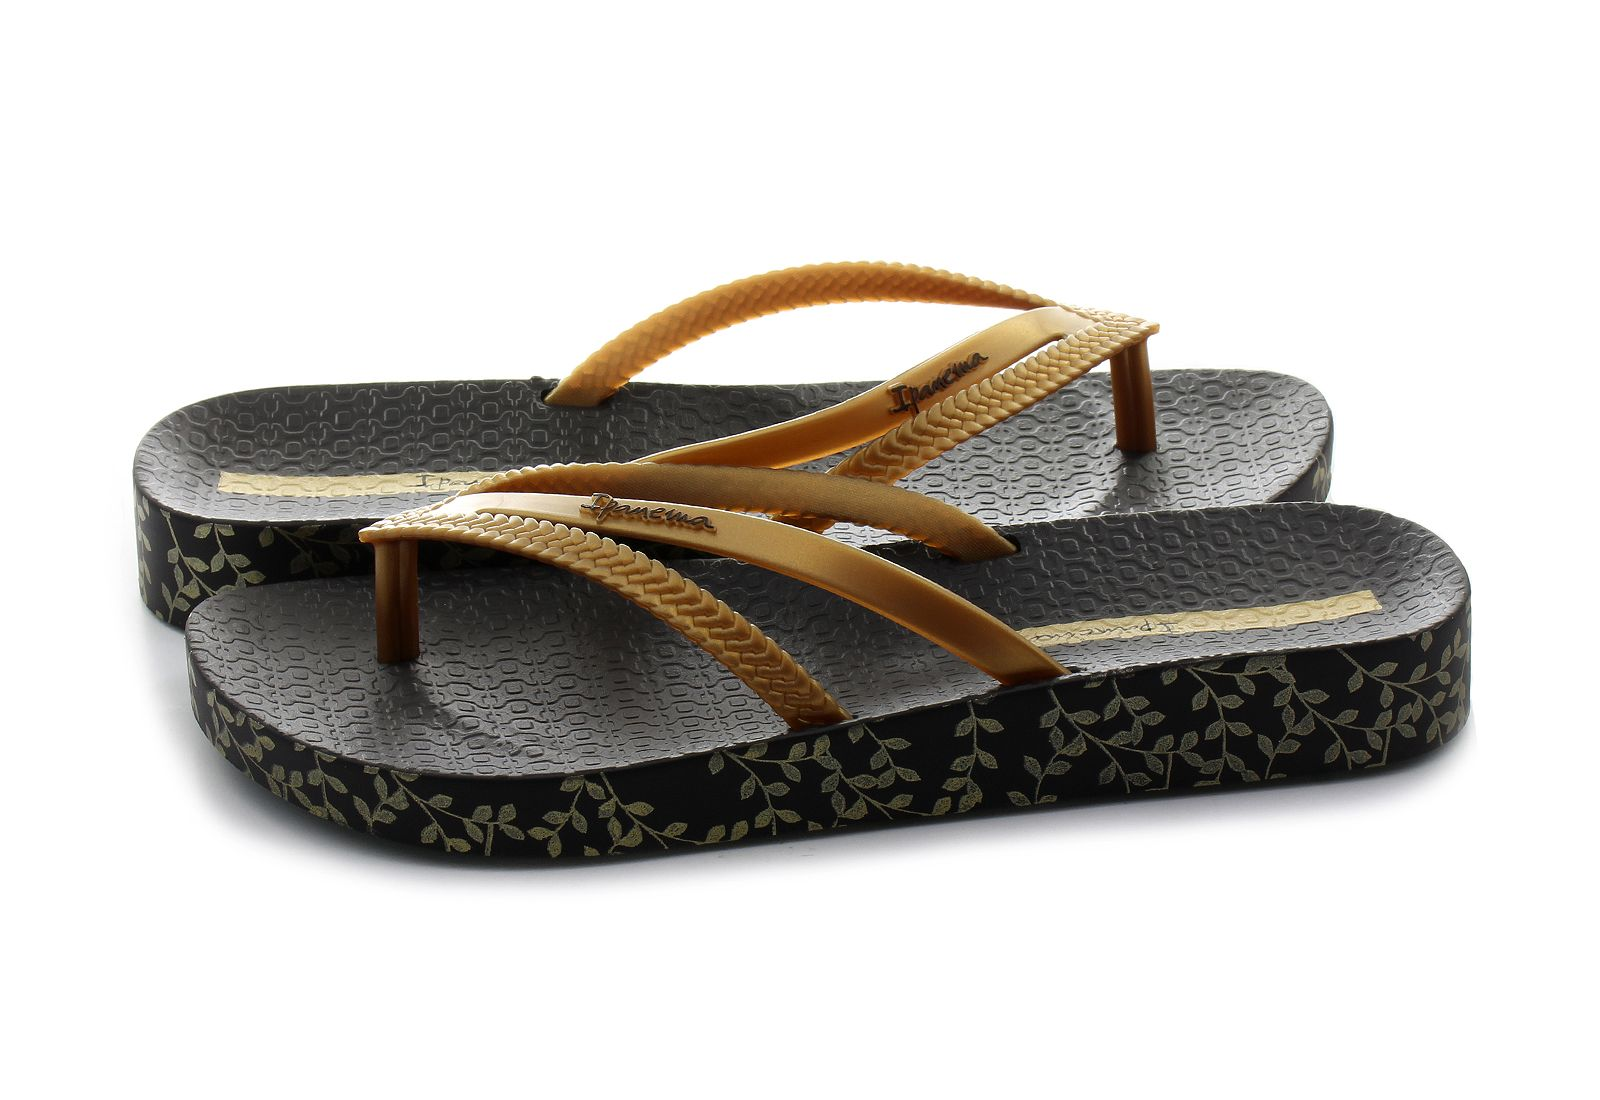 50338804b Ipanema Slippers - Bossa Soft - 82064-21117 - Online shop for ...